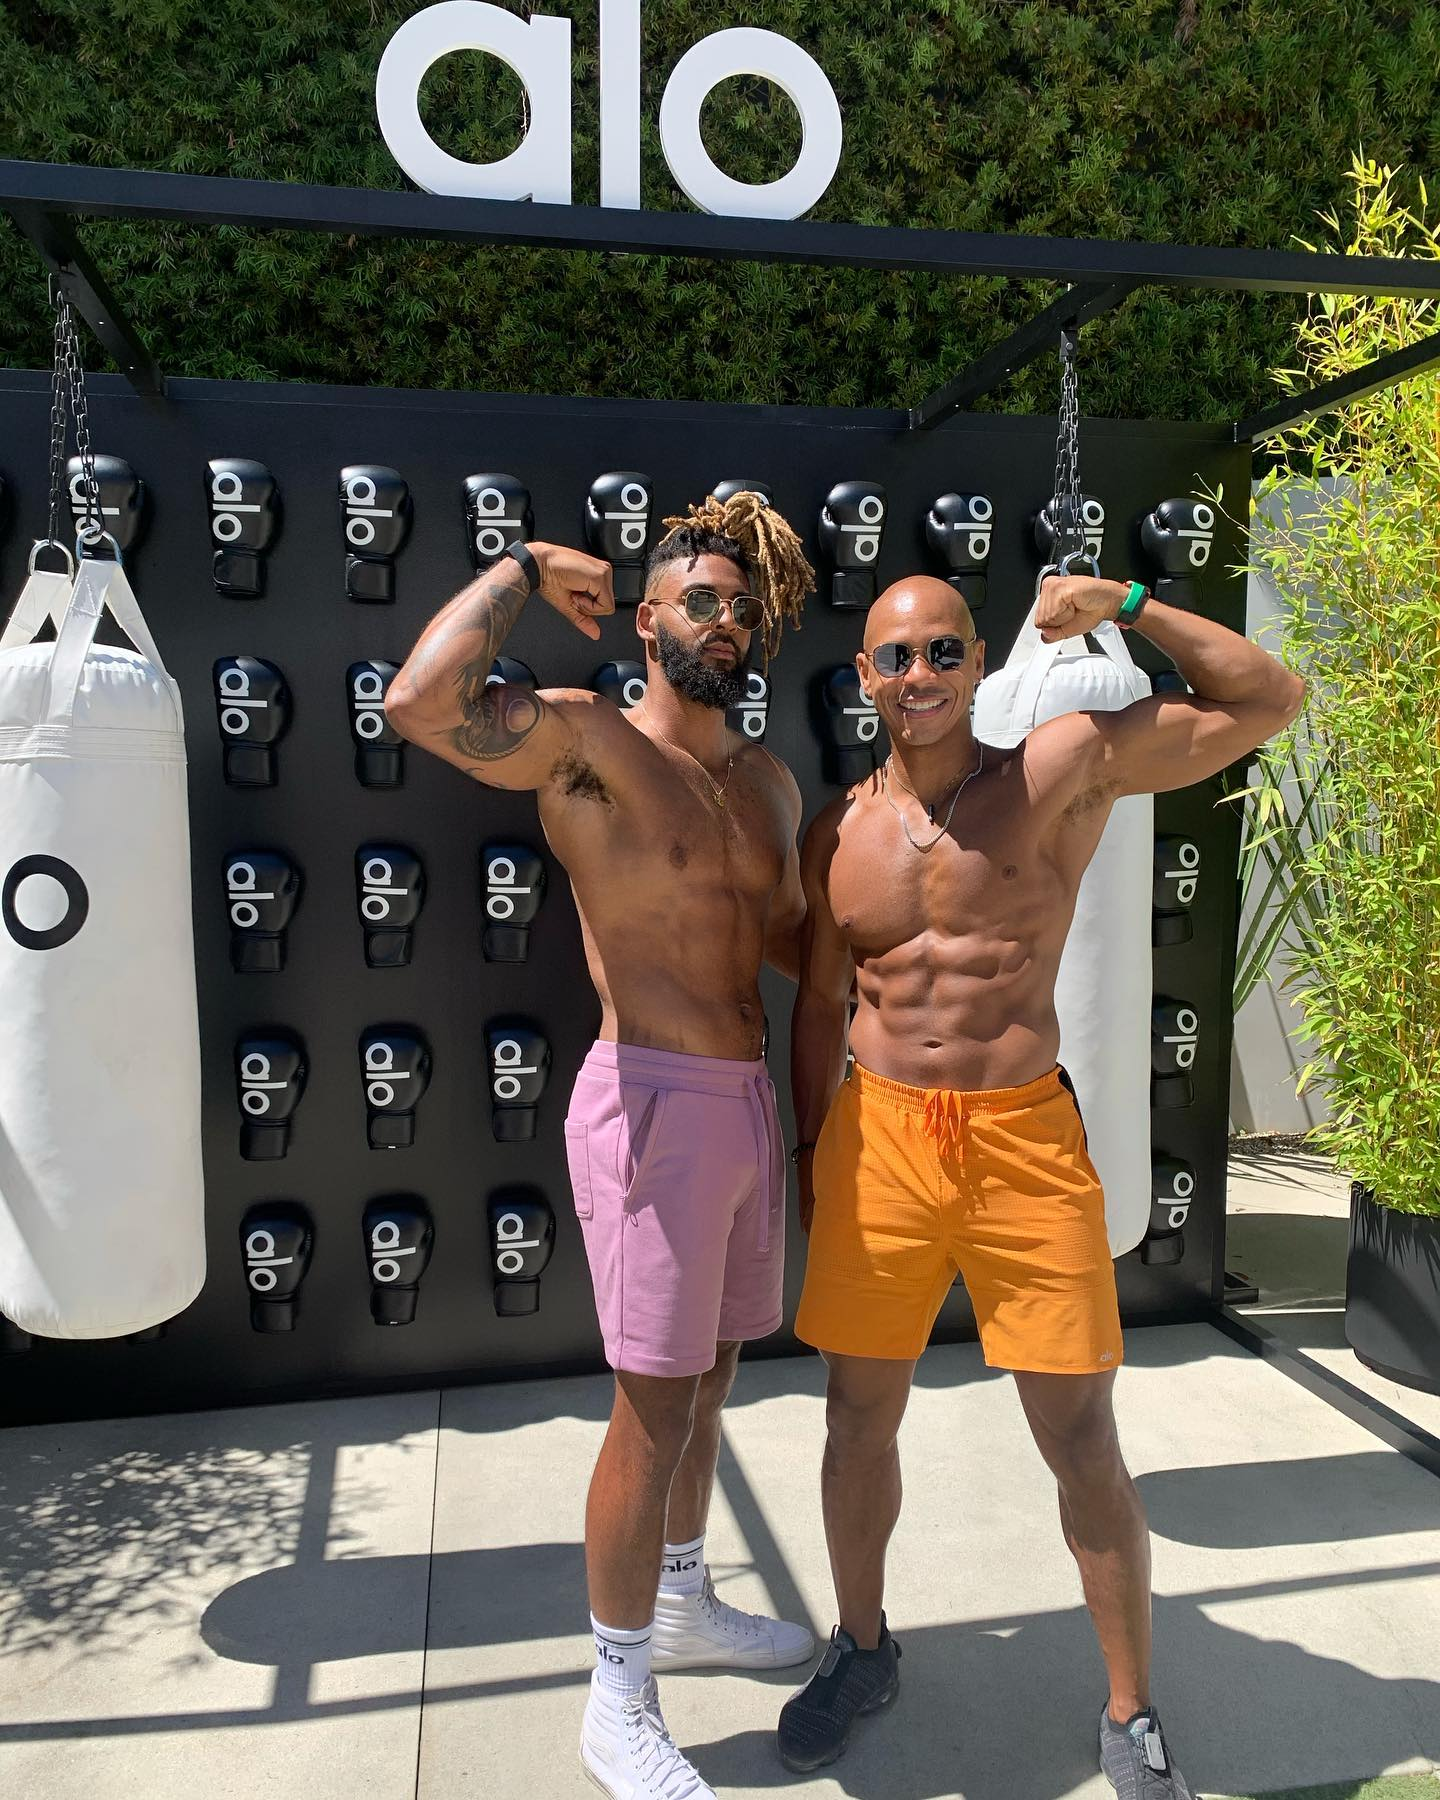 @kupahjames wearing the Traction Short in Atomic Orange and @jt_zen wearing the Chill Shorts in Purple Haze while showing off their muscles in front of the Alo Boxing Station at Alo House.